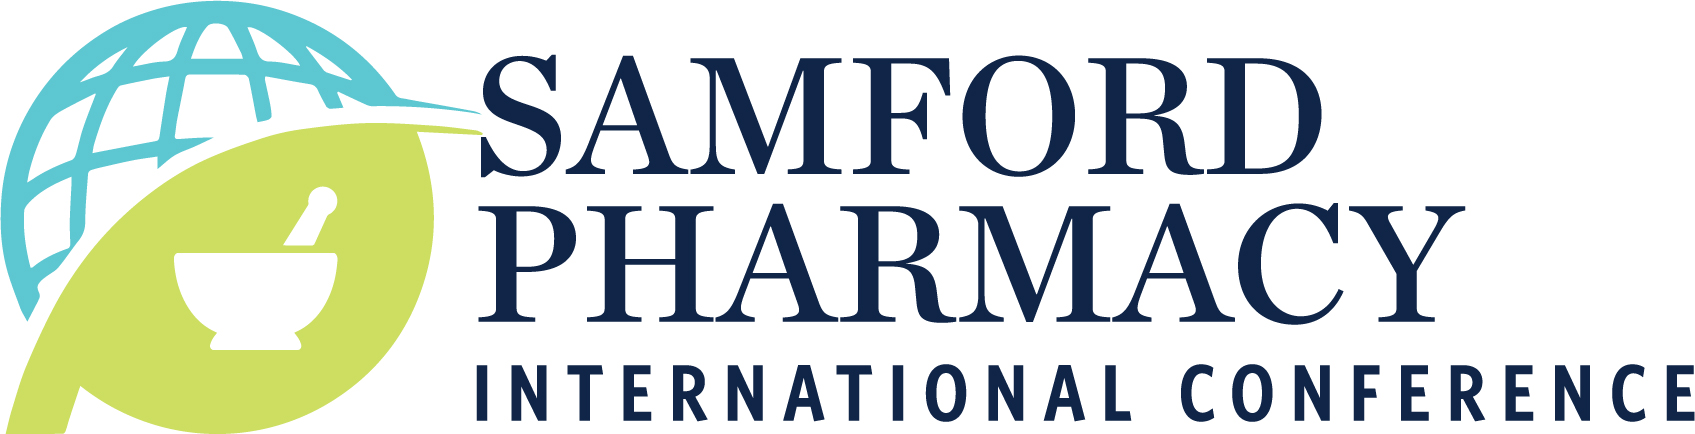 Graphic for Samford Pharmacy International Conference